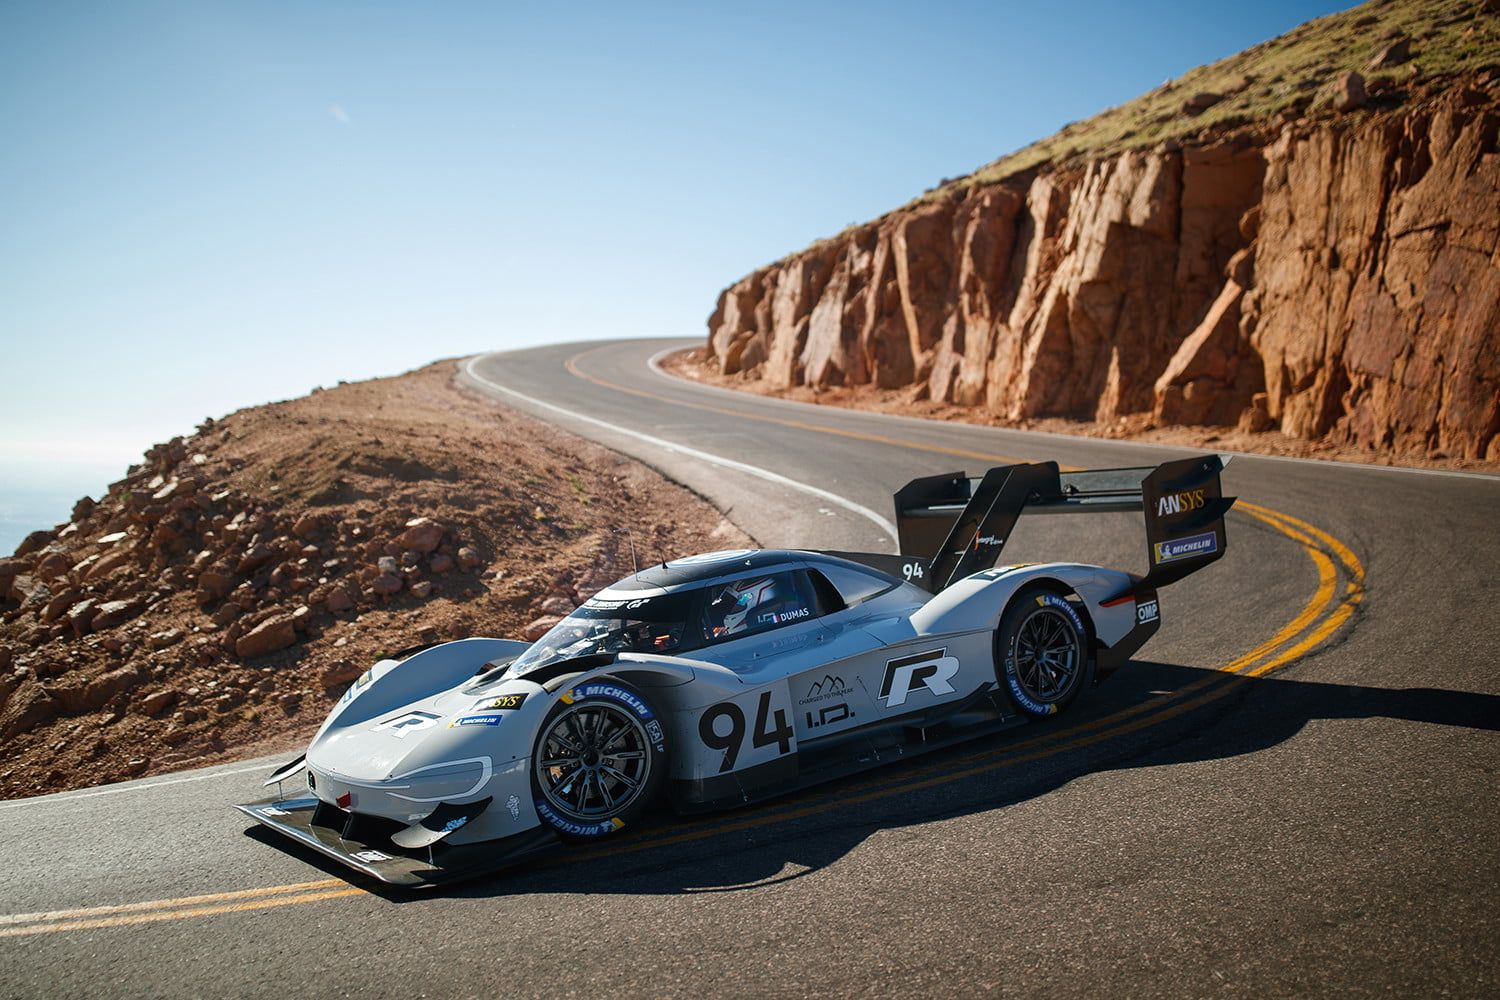 Volkswagen Electric Car Smashes Pikes Peak Hill Climb Record Digital Trends Car Volkswagen Volkswagen Pikes Peak